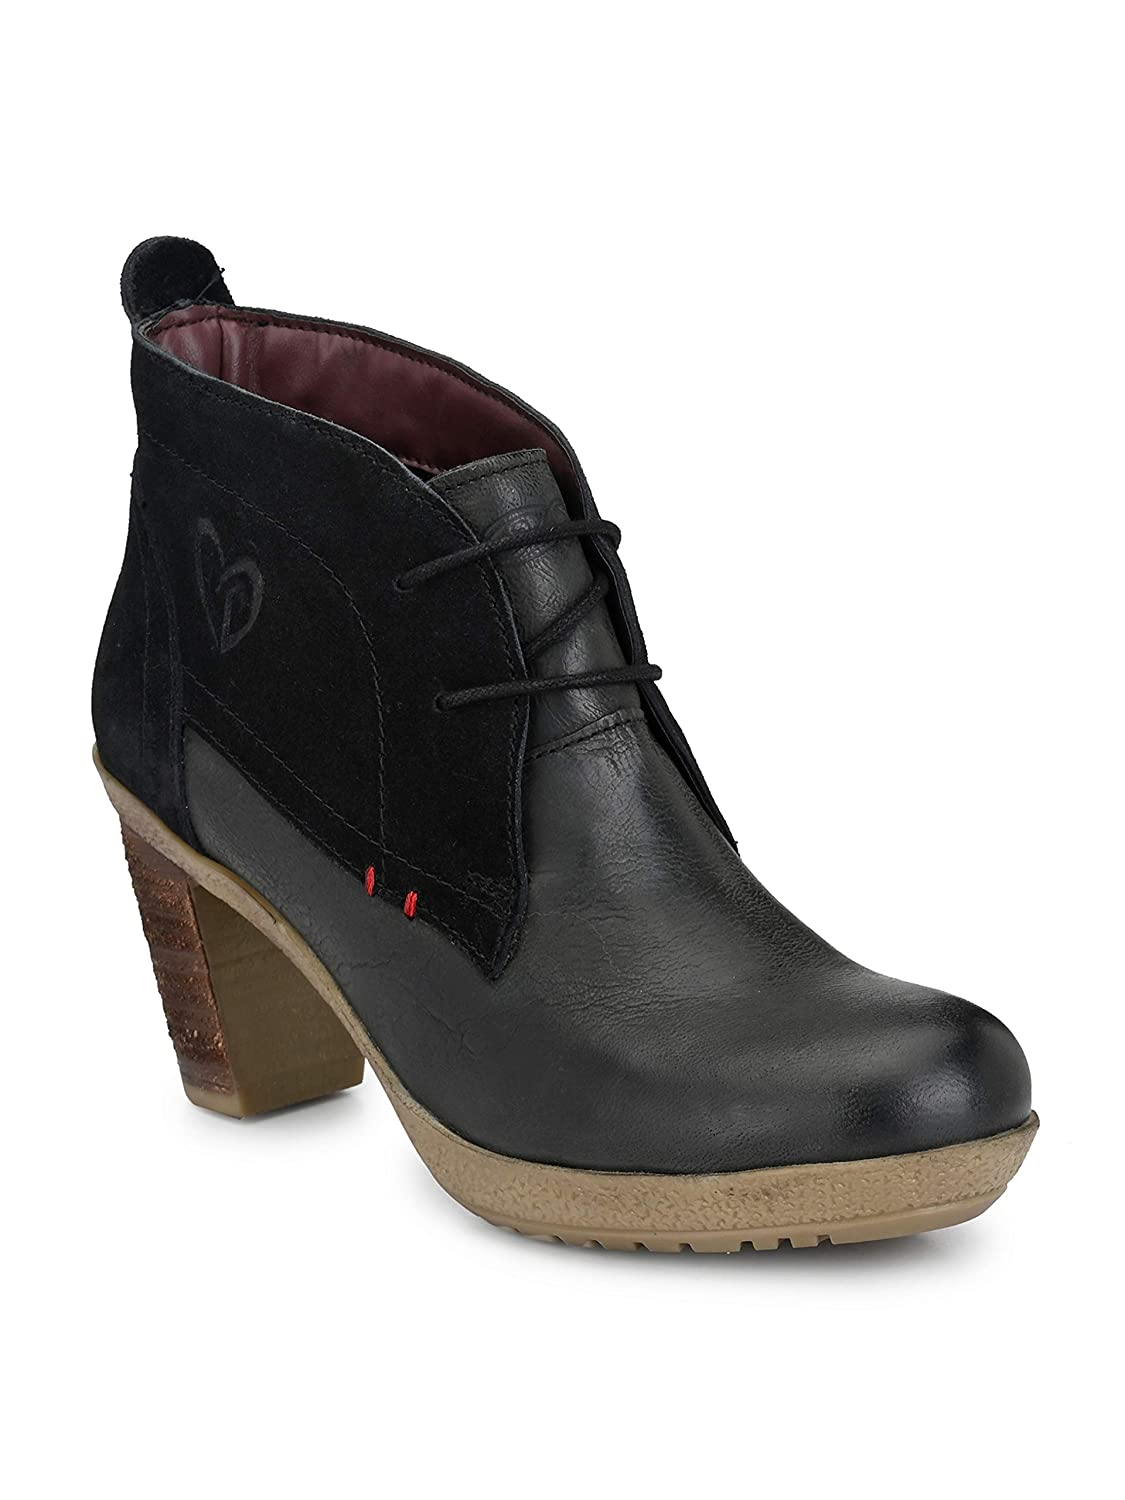 Delize women footwears up to 83% off @ Amazon